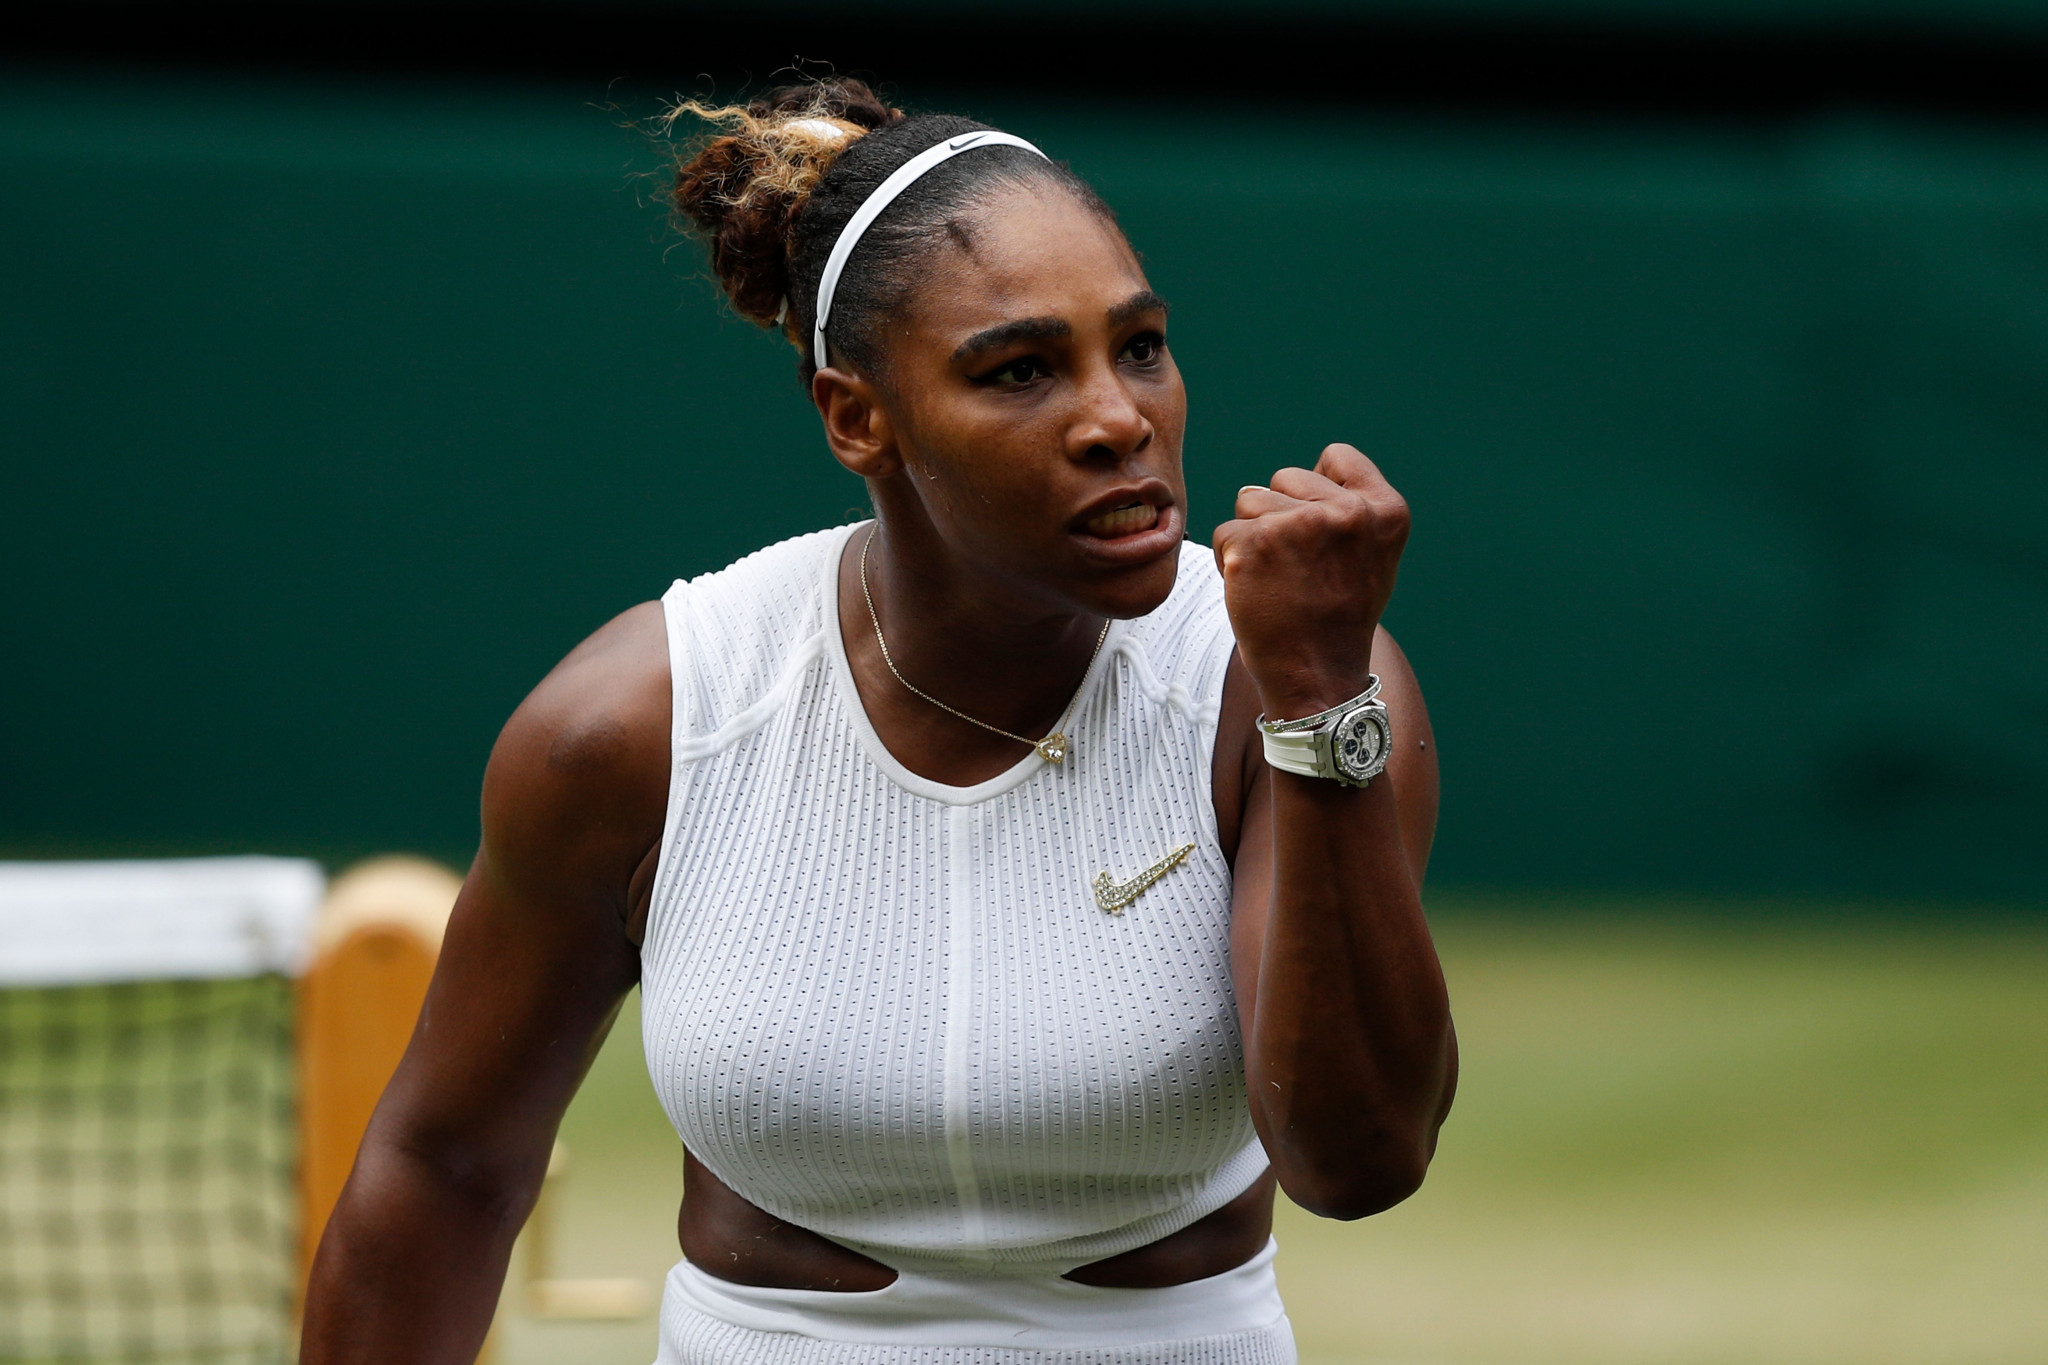 Serena Williams beat fellow American Alison Riske in three sets today to reach the women's singles semi-finals at Wimbledon ©Getty Images